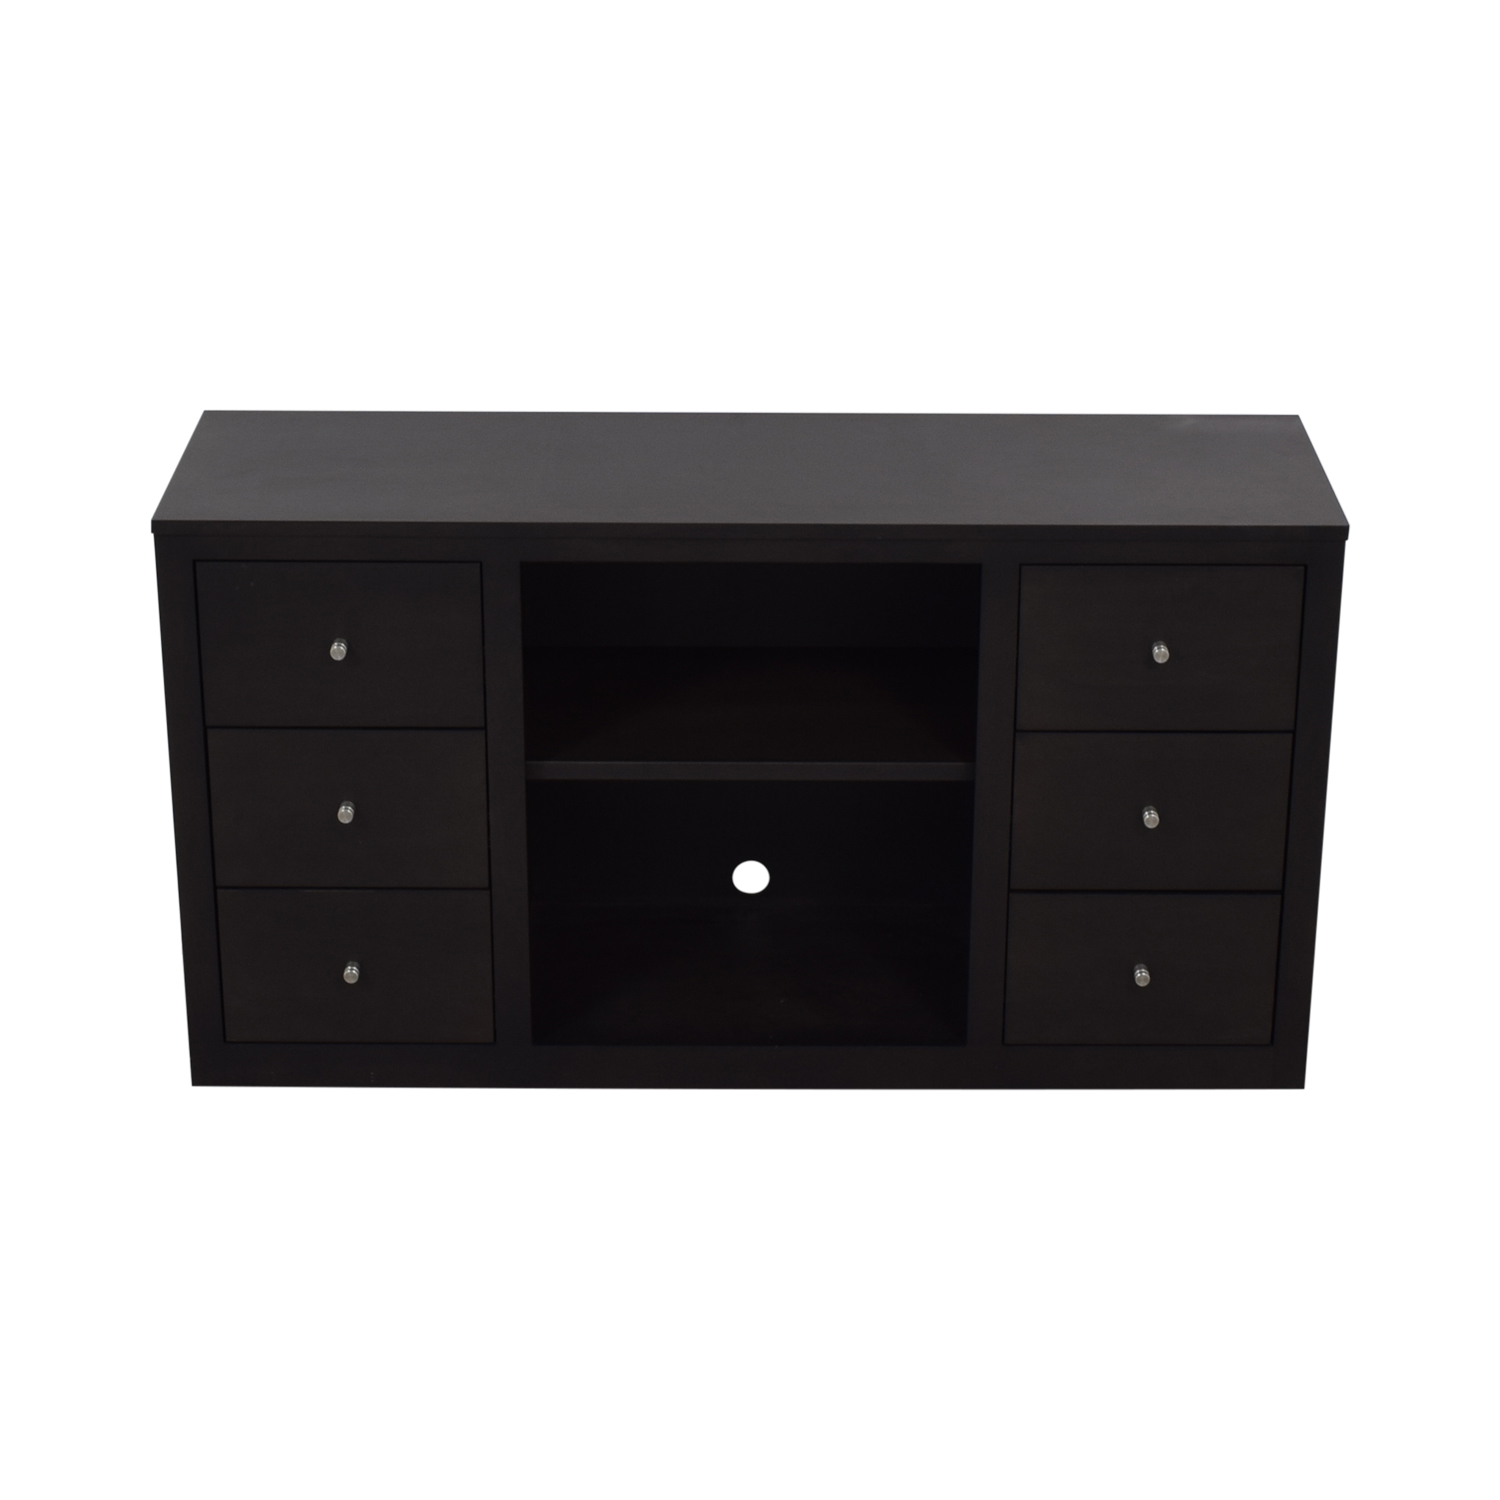 Room & Board Room & Board Woodwind Maple With Charcoal Stain Media Cabinet